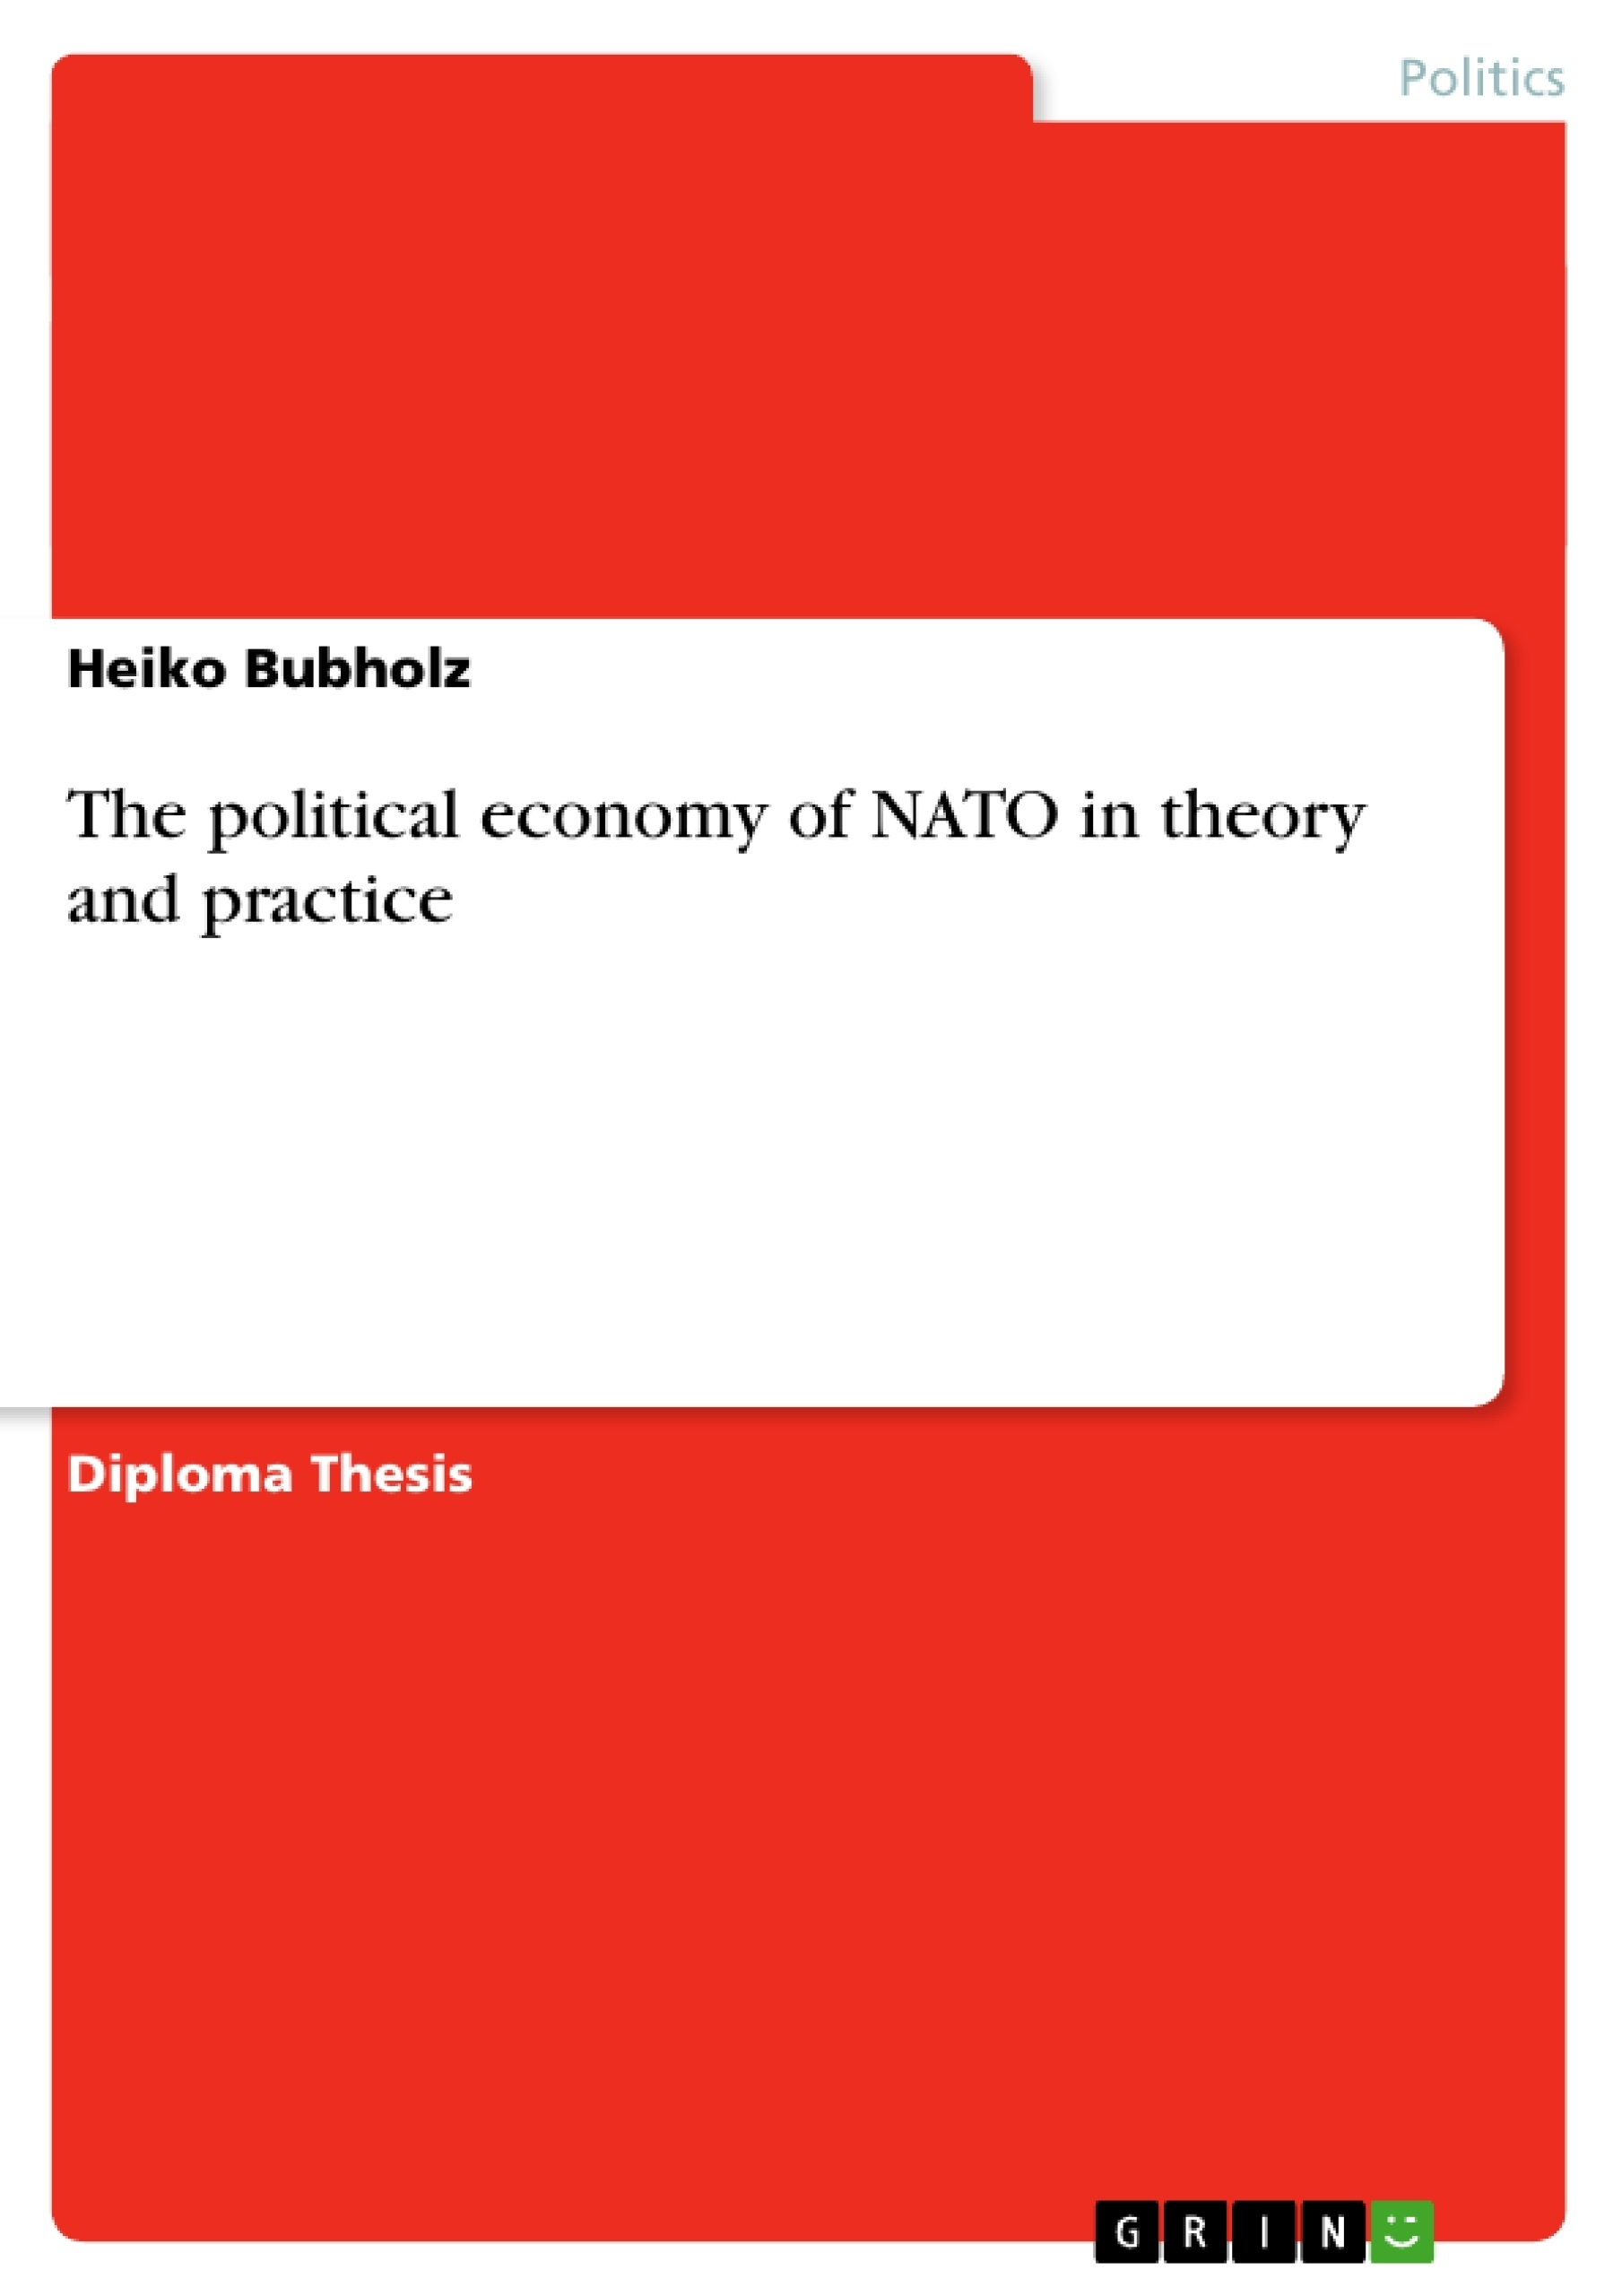 Title: The political economy of NATO in theory and practice